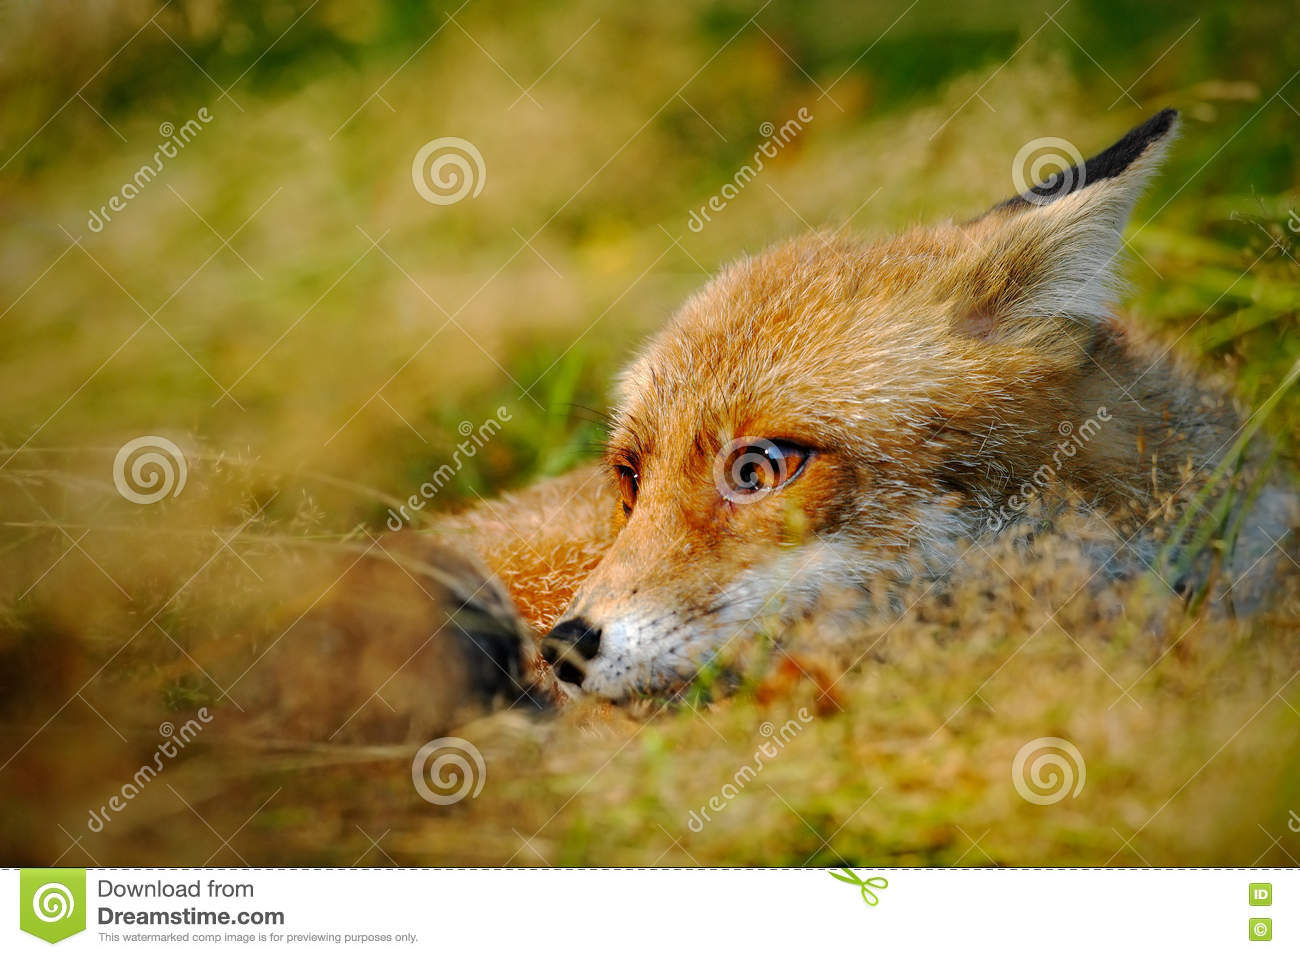 Cute Red Fox, Vulpes vulpes, animal at green forest with stones, in the nature habitat, detail head portrait, Austria